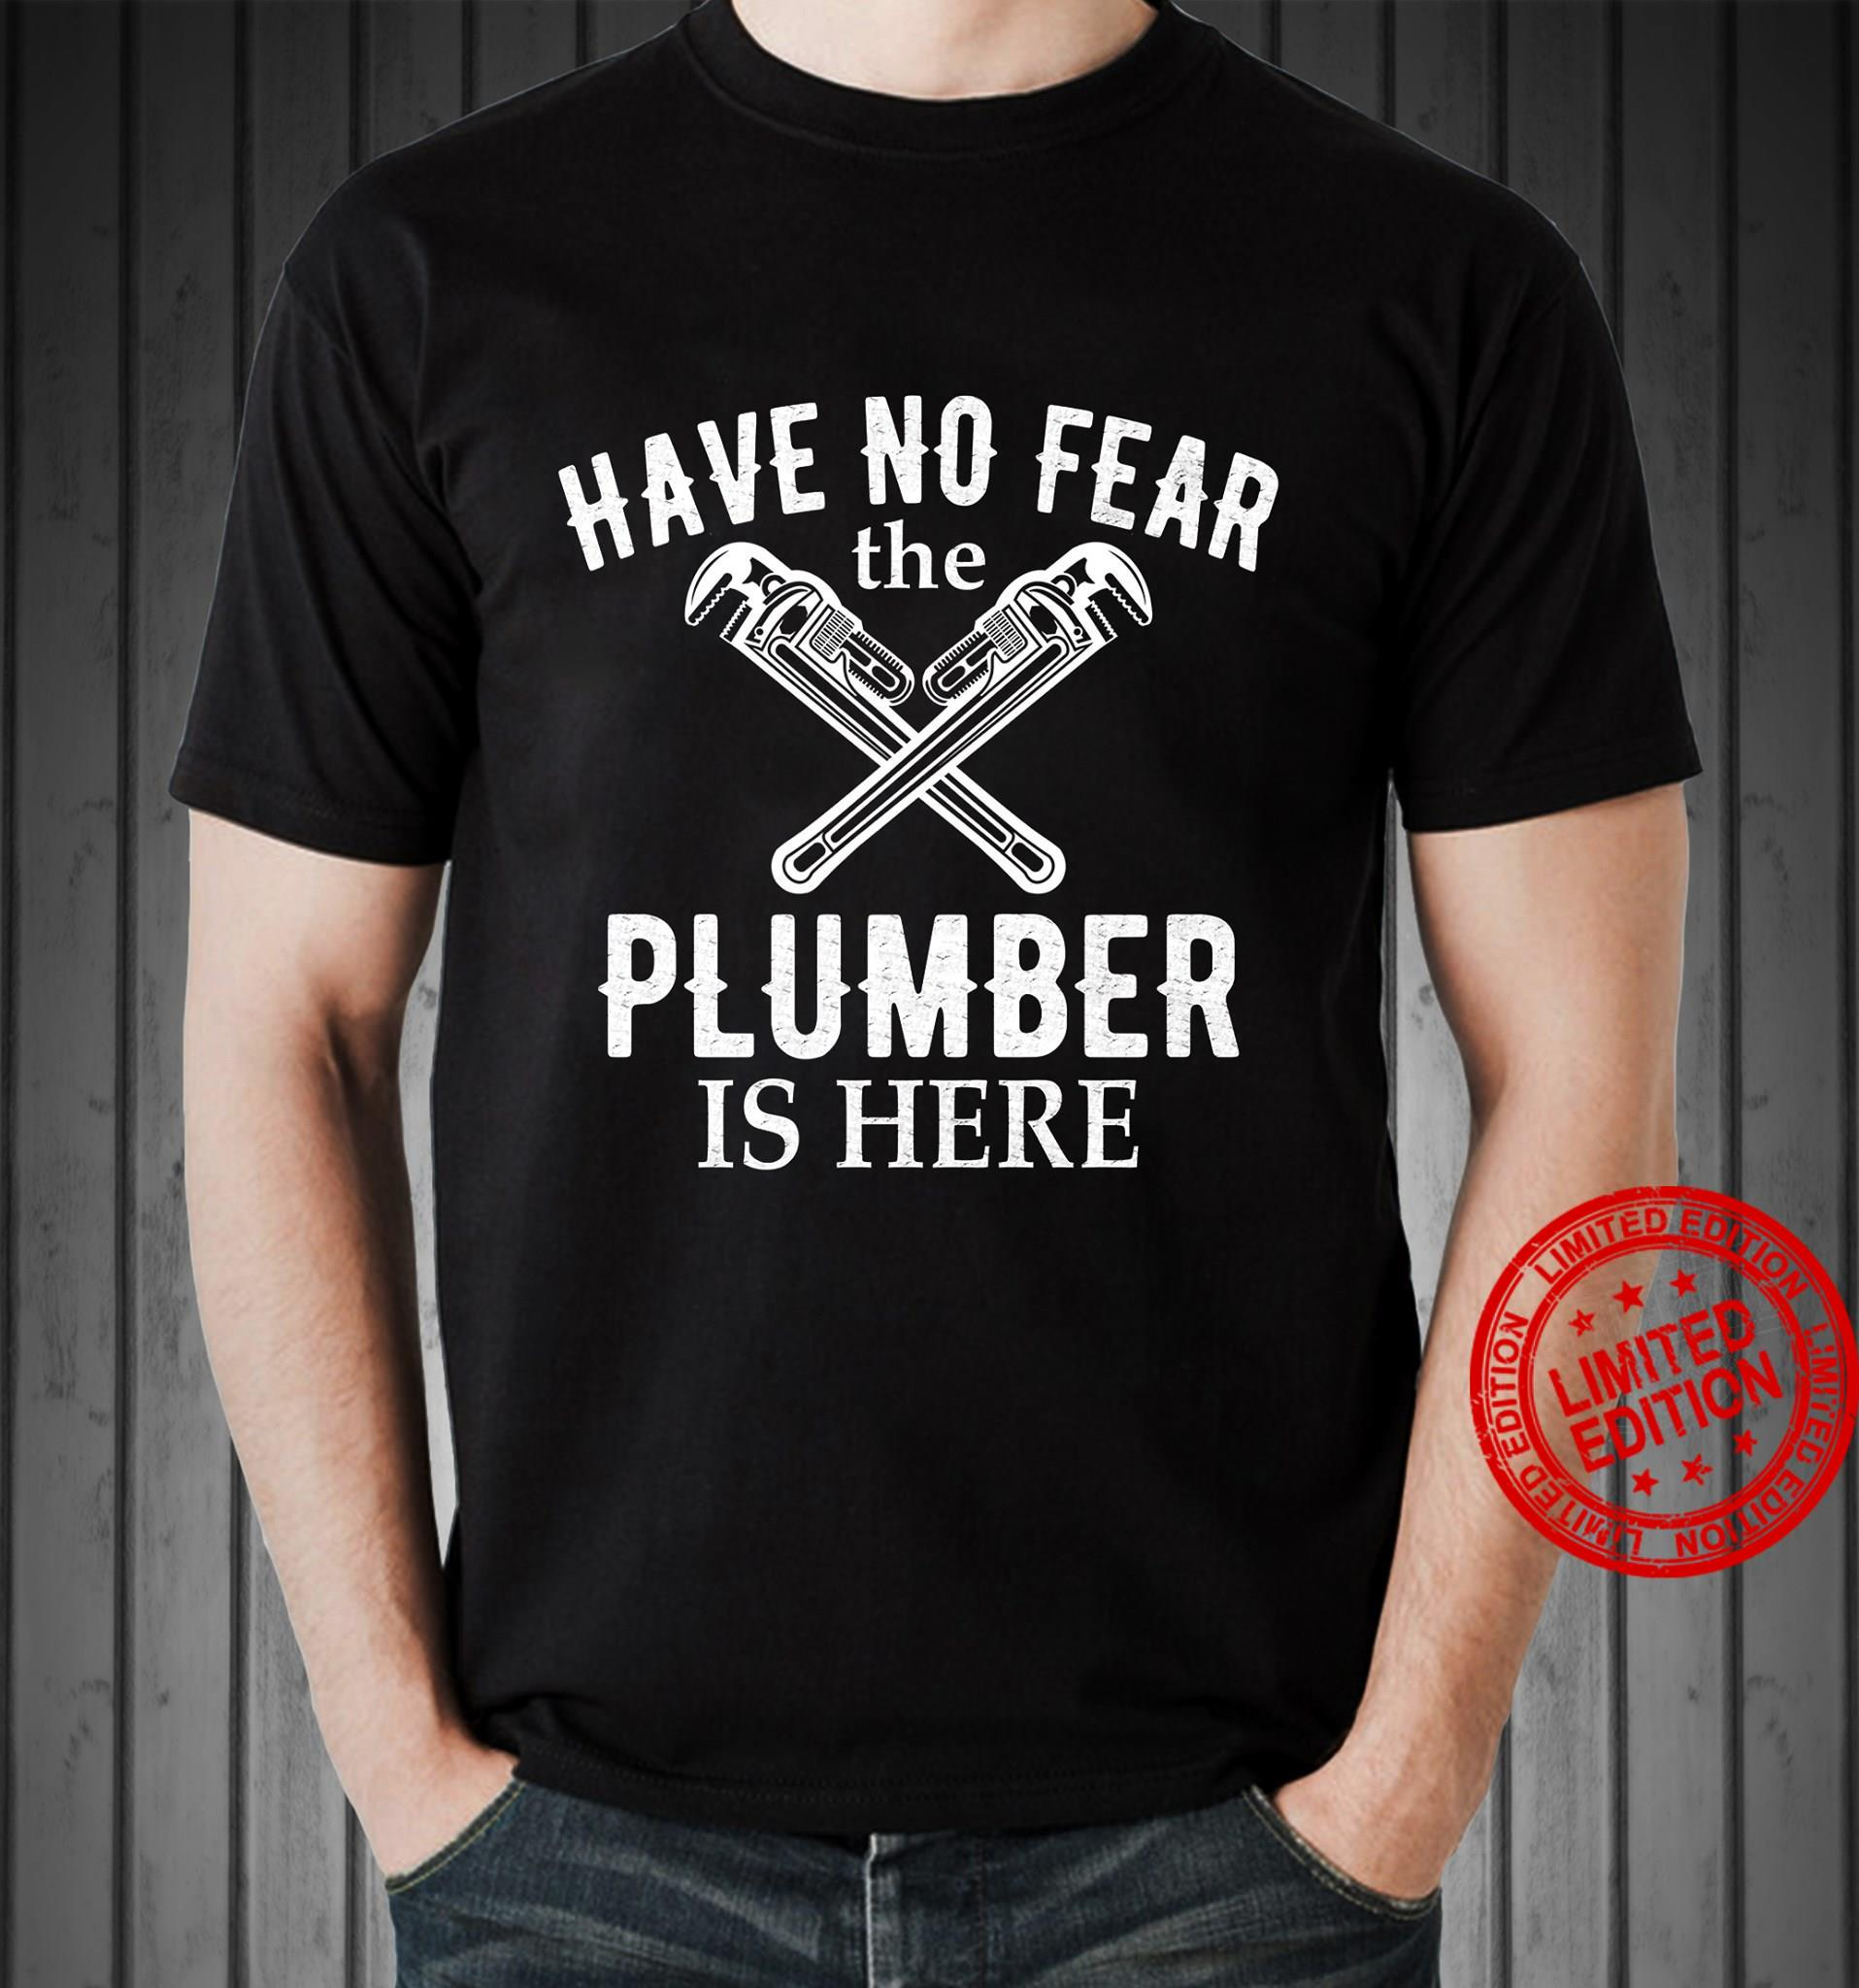 Have No Fear The Flumber Is Here Shirt